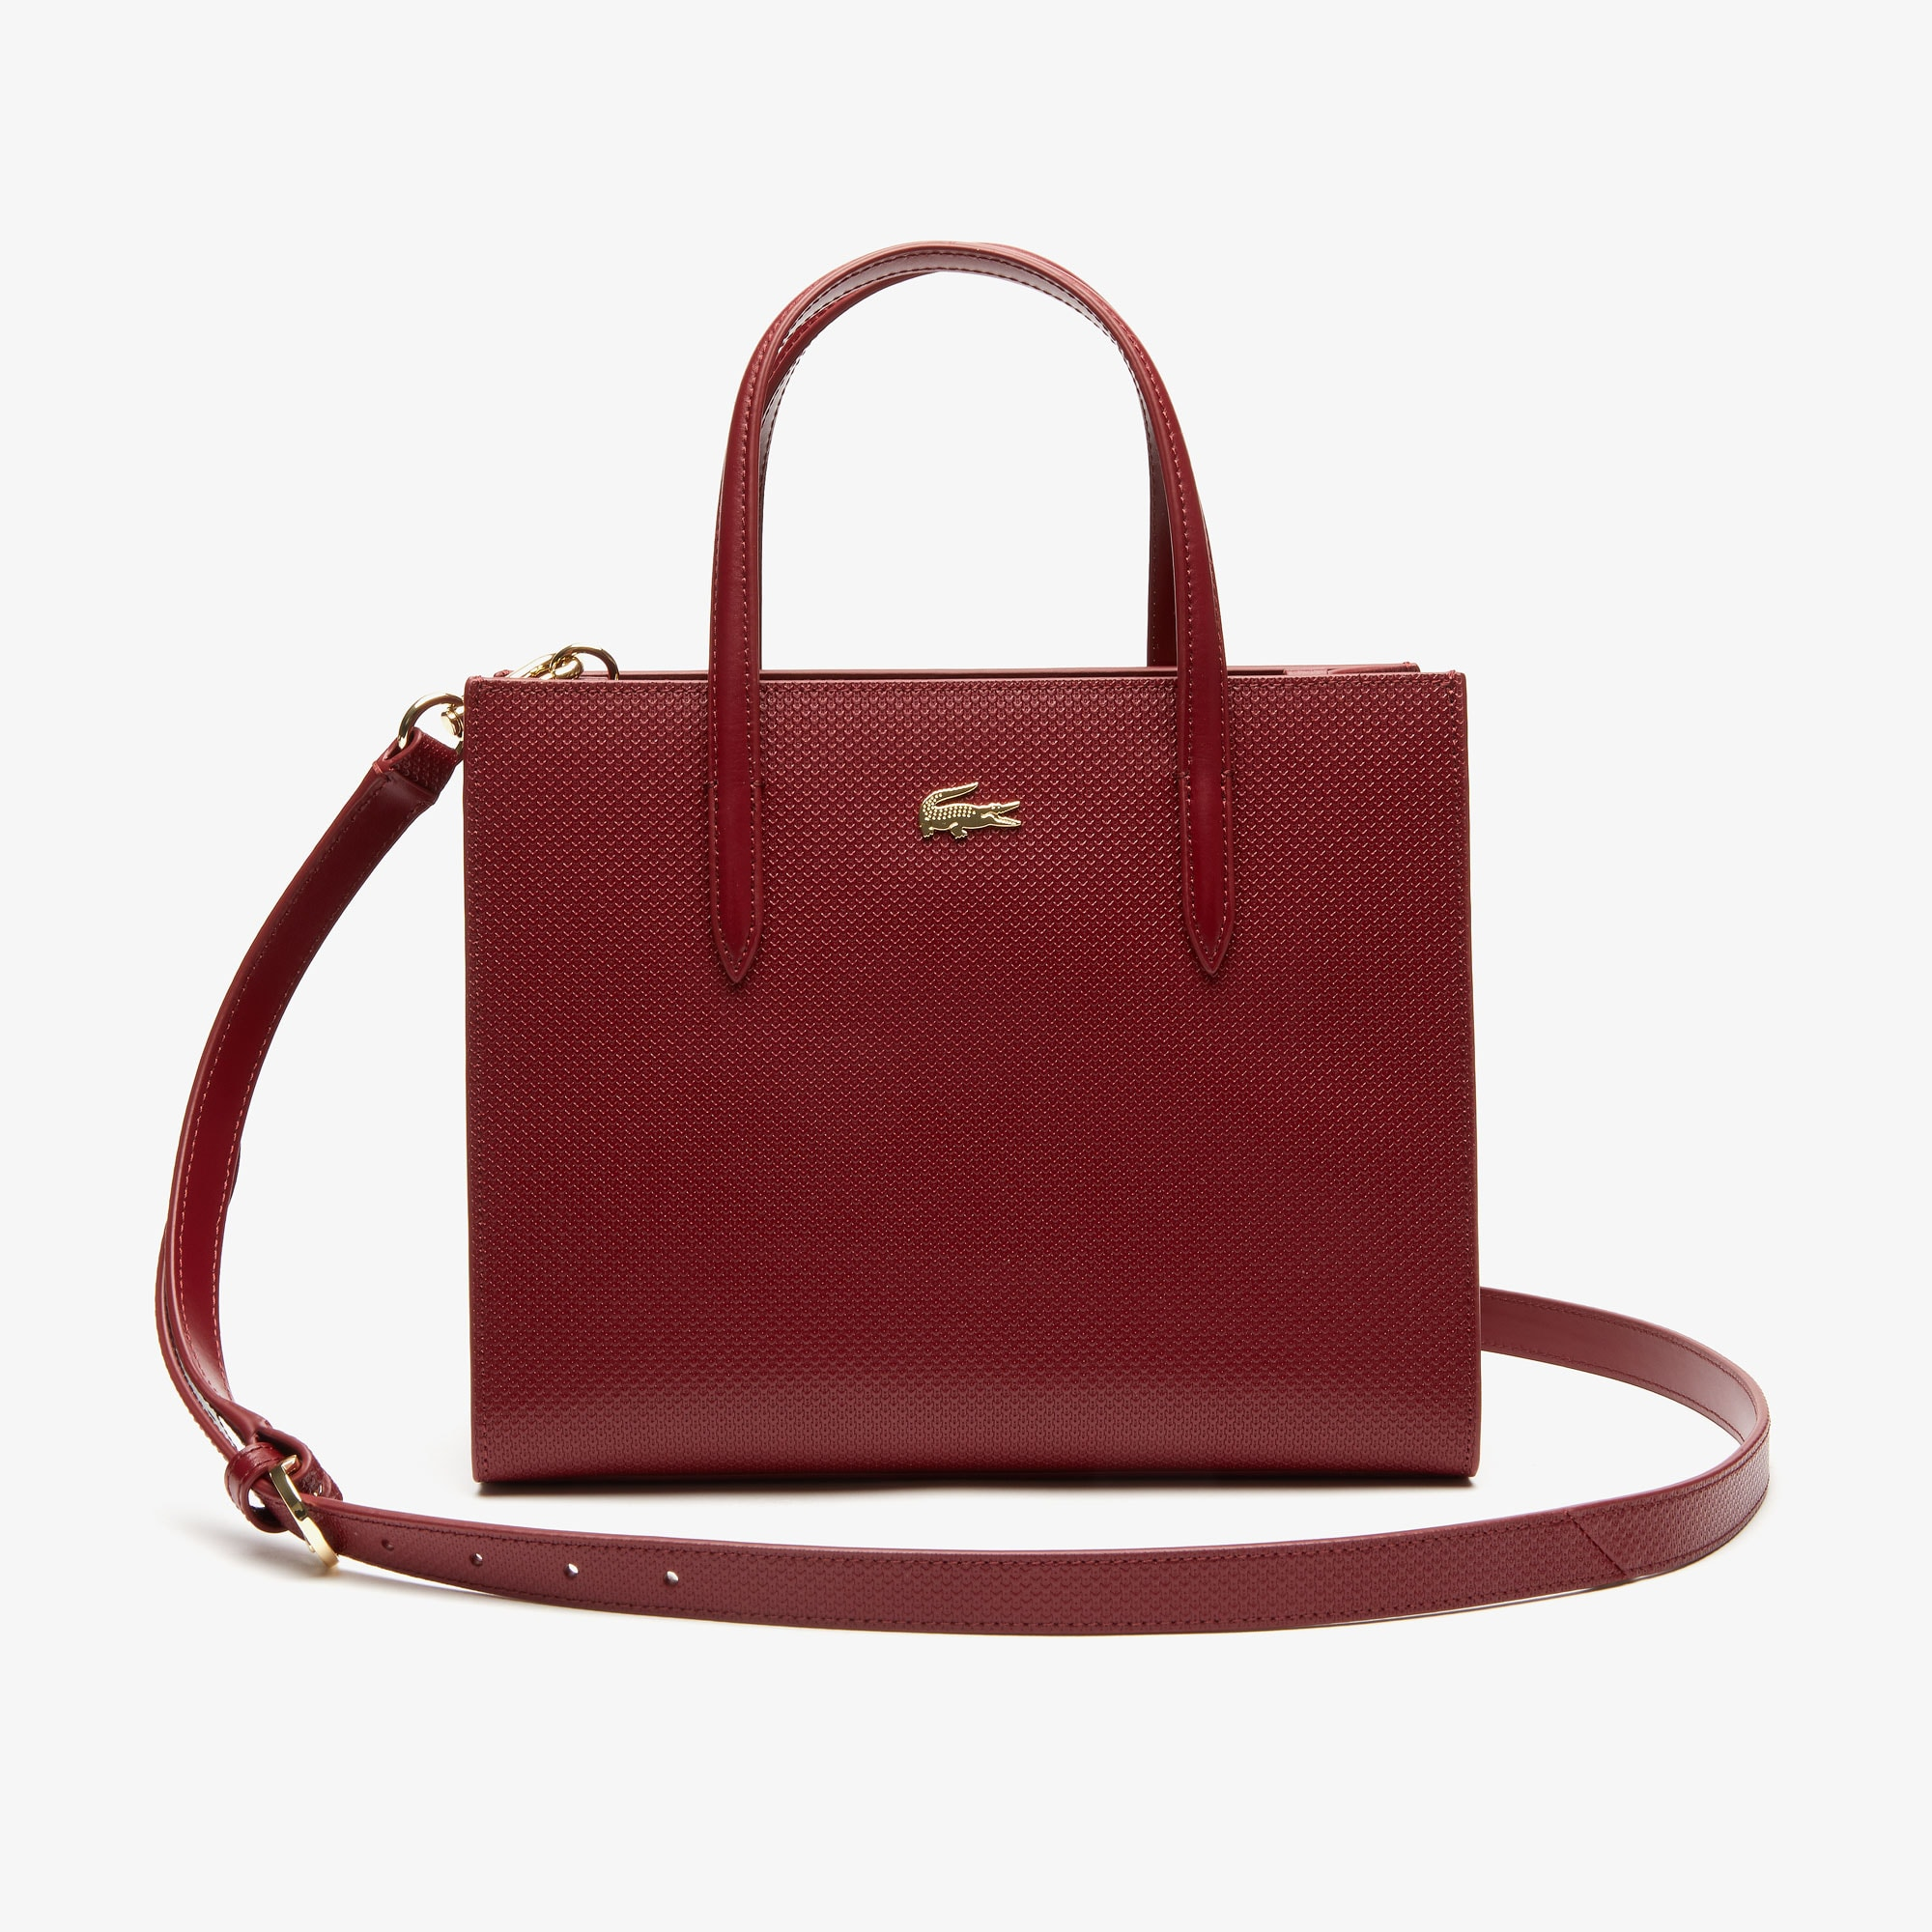 f8e3638fd328d5 Bags & Handbags Collection | Women's Leather Goods | LACOSTE